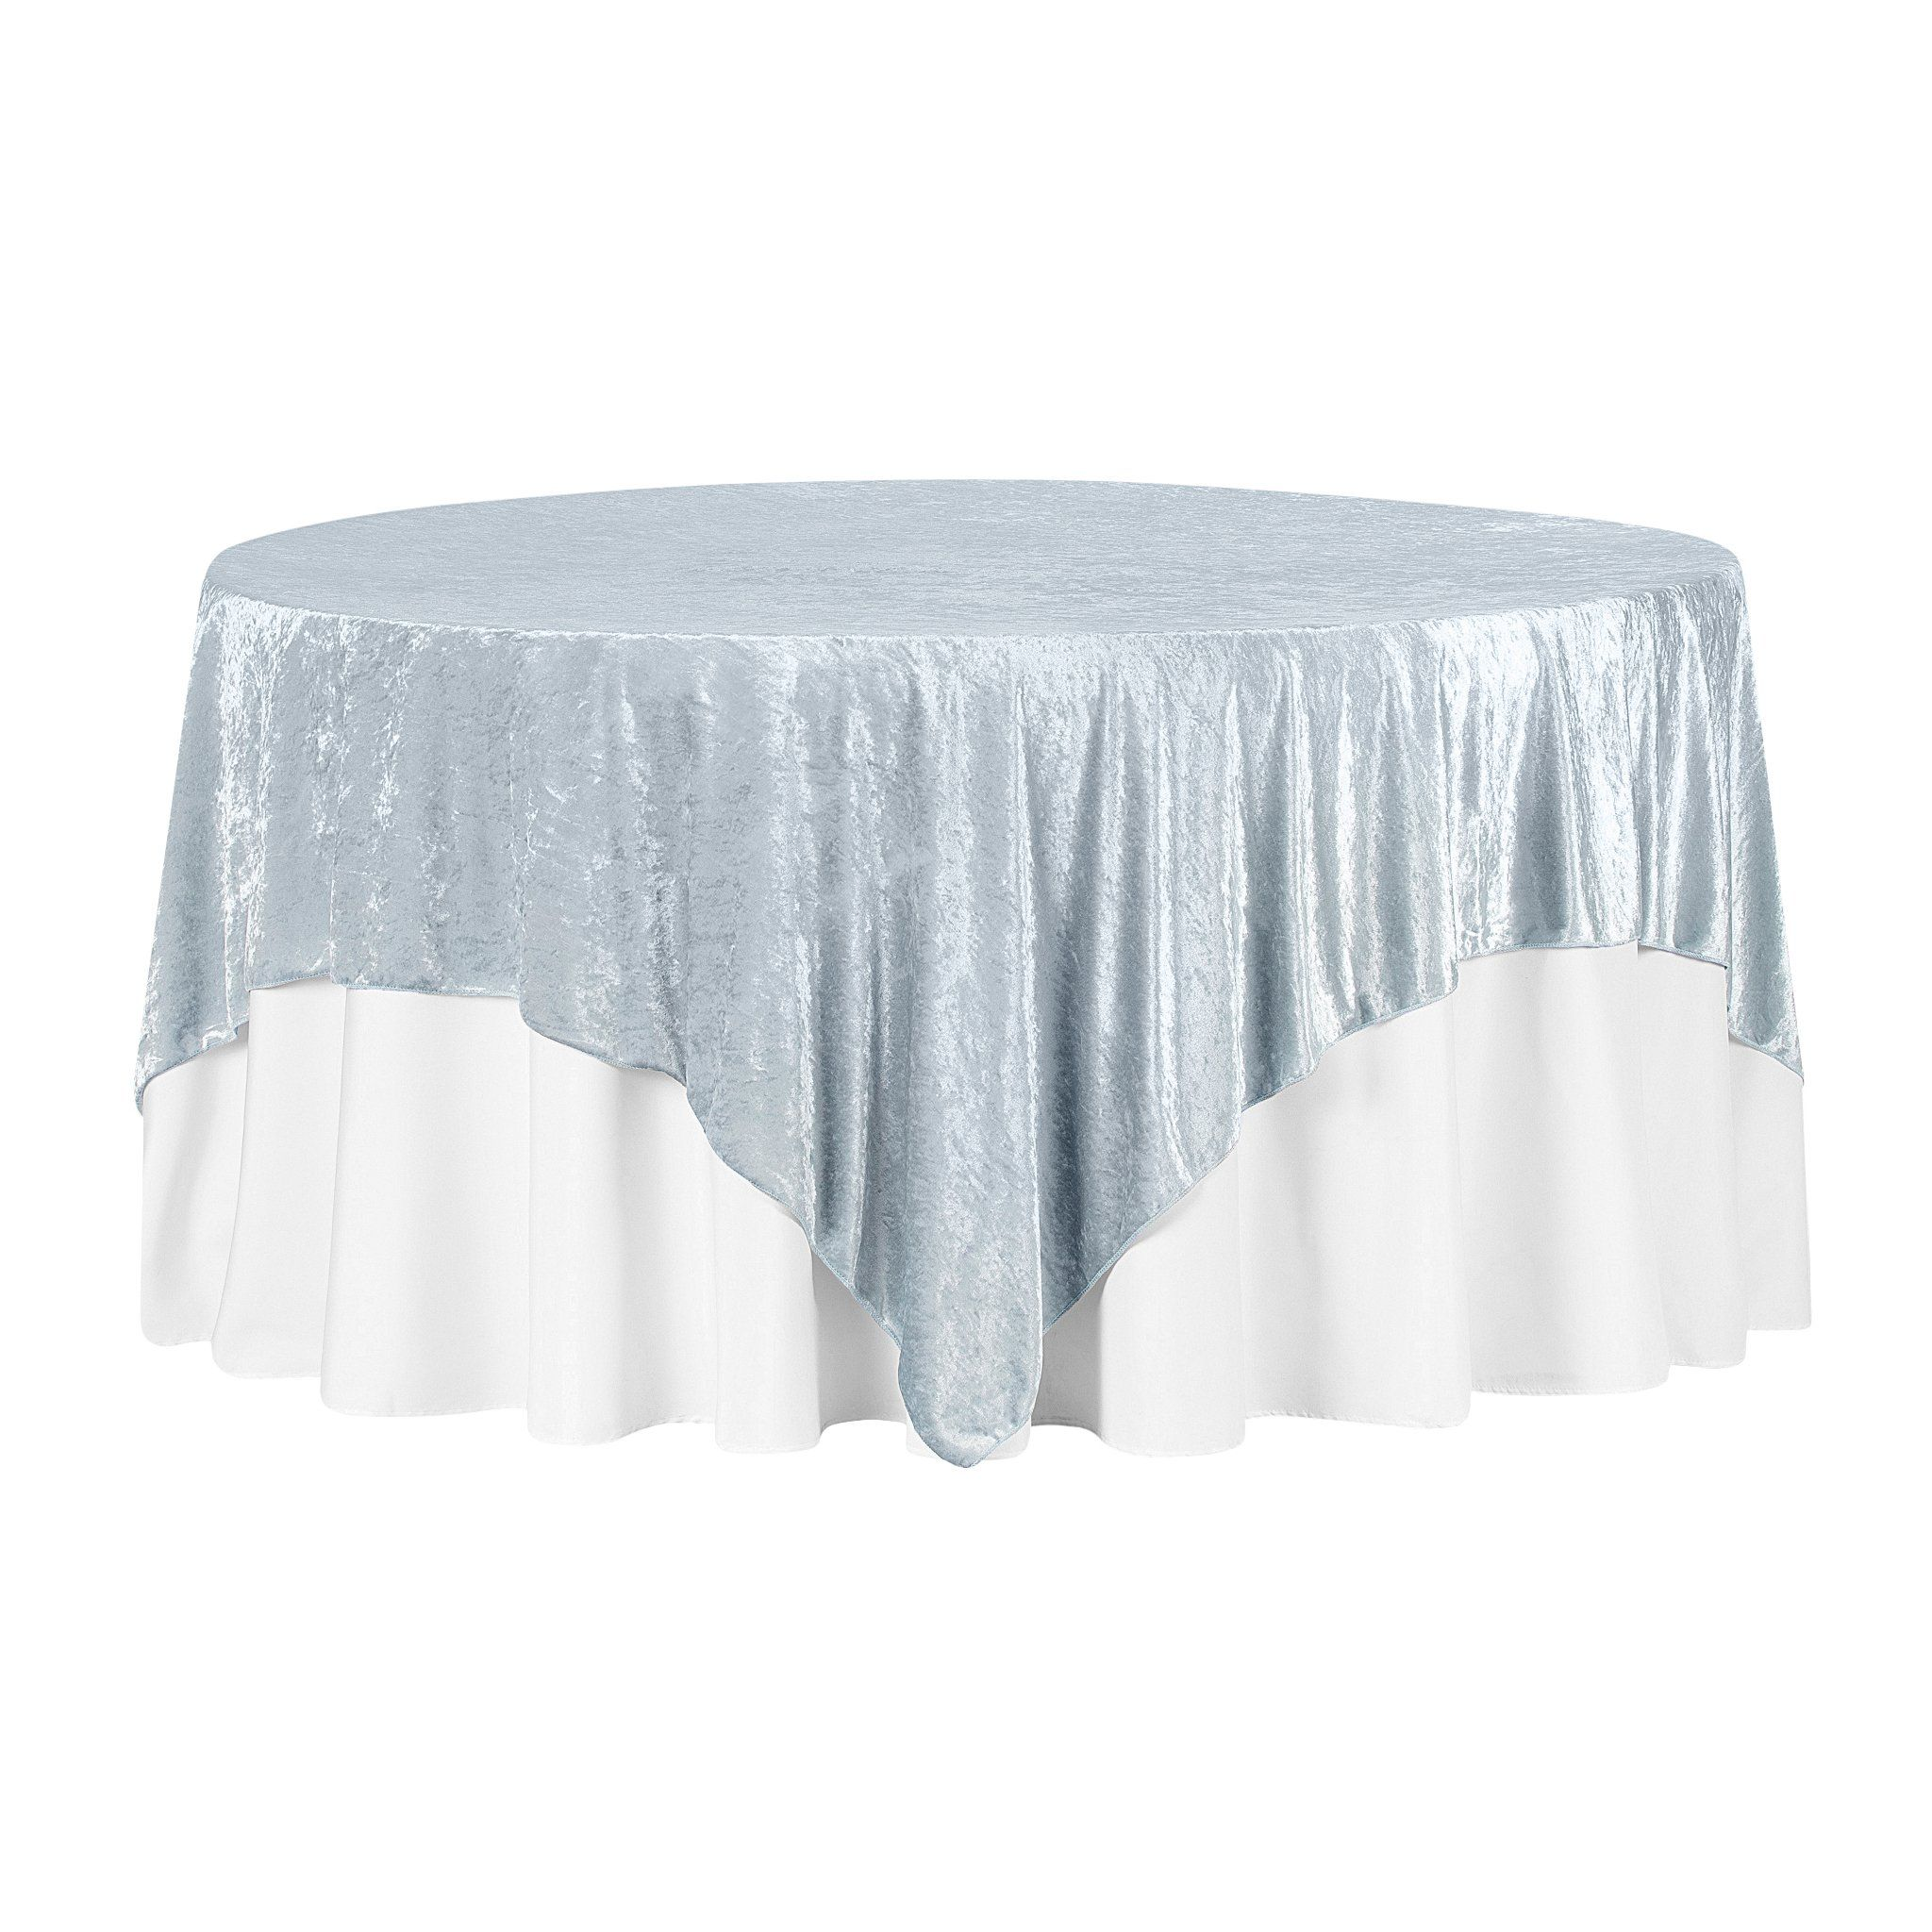 """Velvet 85""""x85"""" Square Tablecloth Table Overlay - Dusty Blue"""